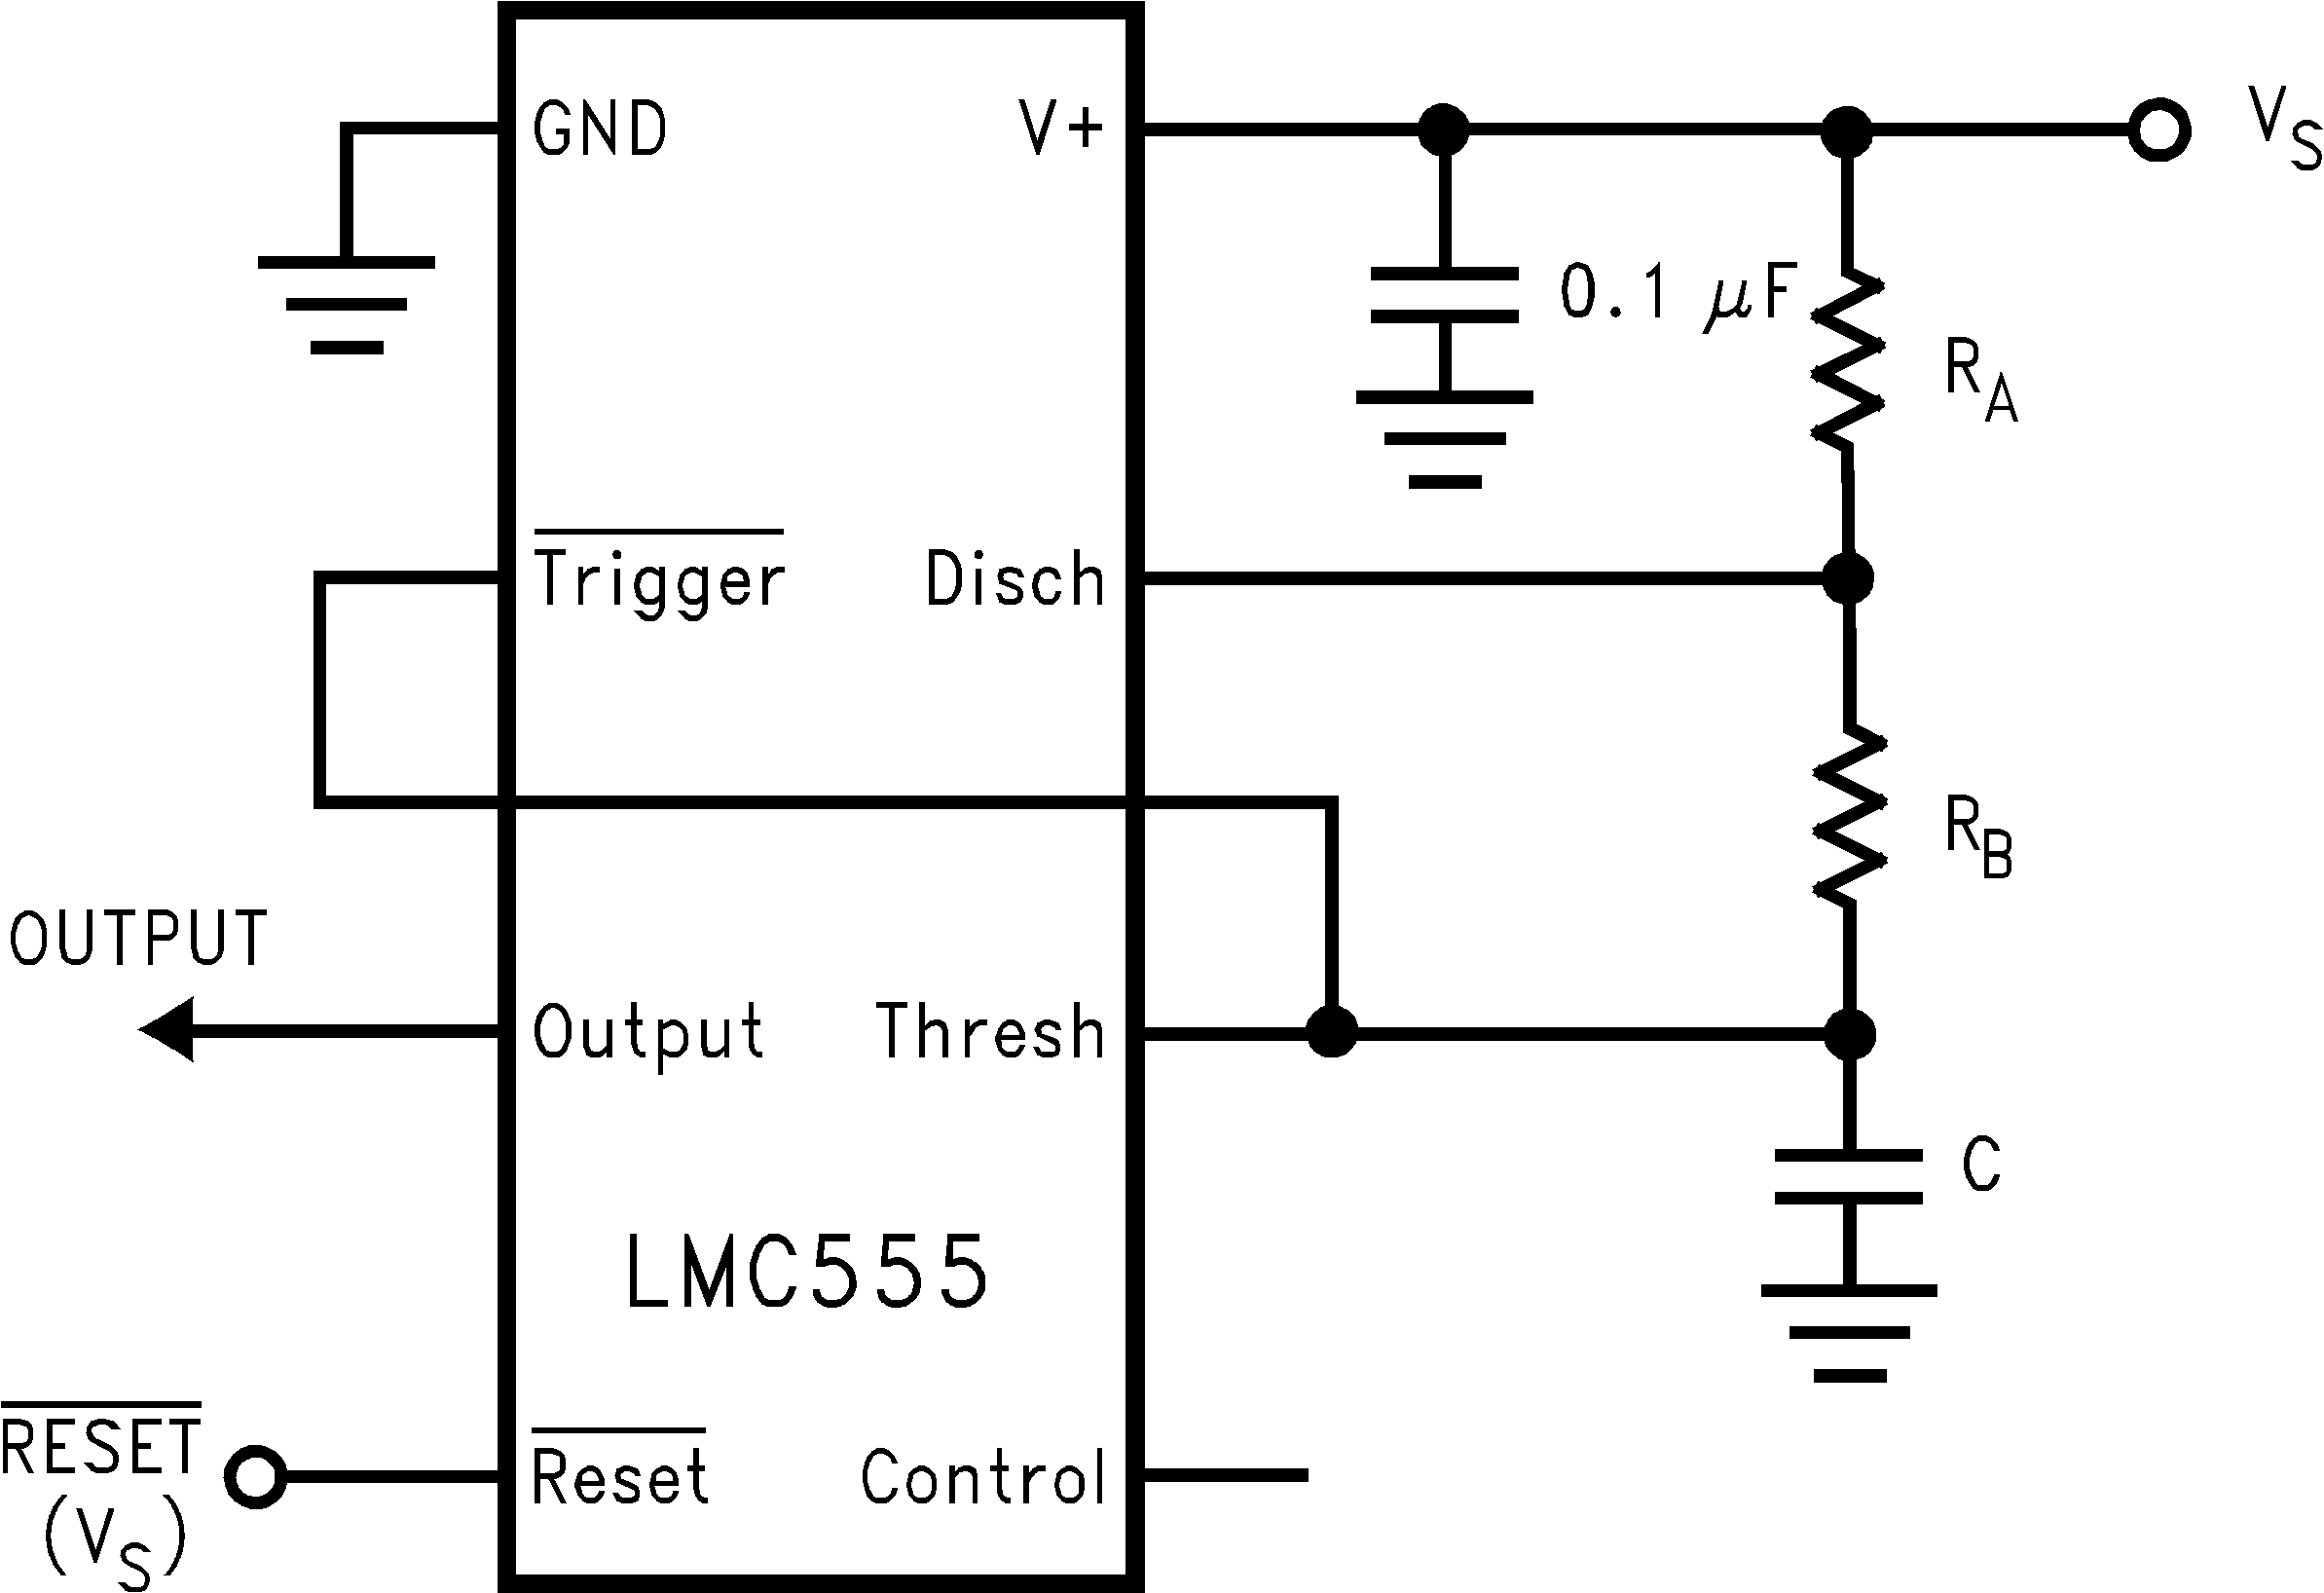 Lmc555 The Astable Oscillator Operating Mode In 555 Timer Ic Circuit 866905 Figure 6 Variable Duty Cycle This Of Operation